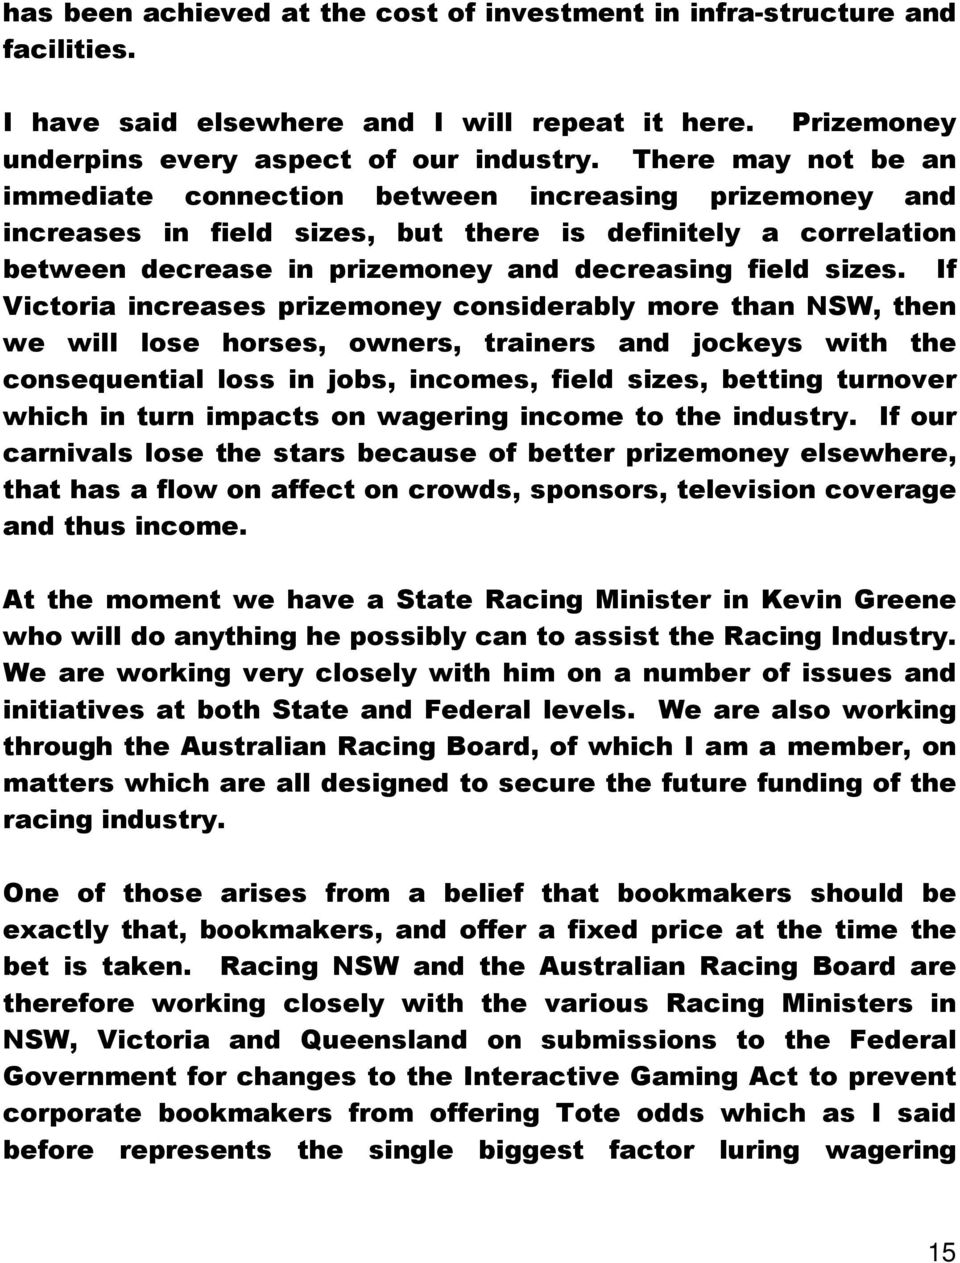 If Victoria increases prizemoney considerably more than NSW, then we will lose horses, owners, trainers and jockeys with the consequential loss in jobs, incomes, field sizes, betting turnover which